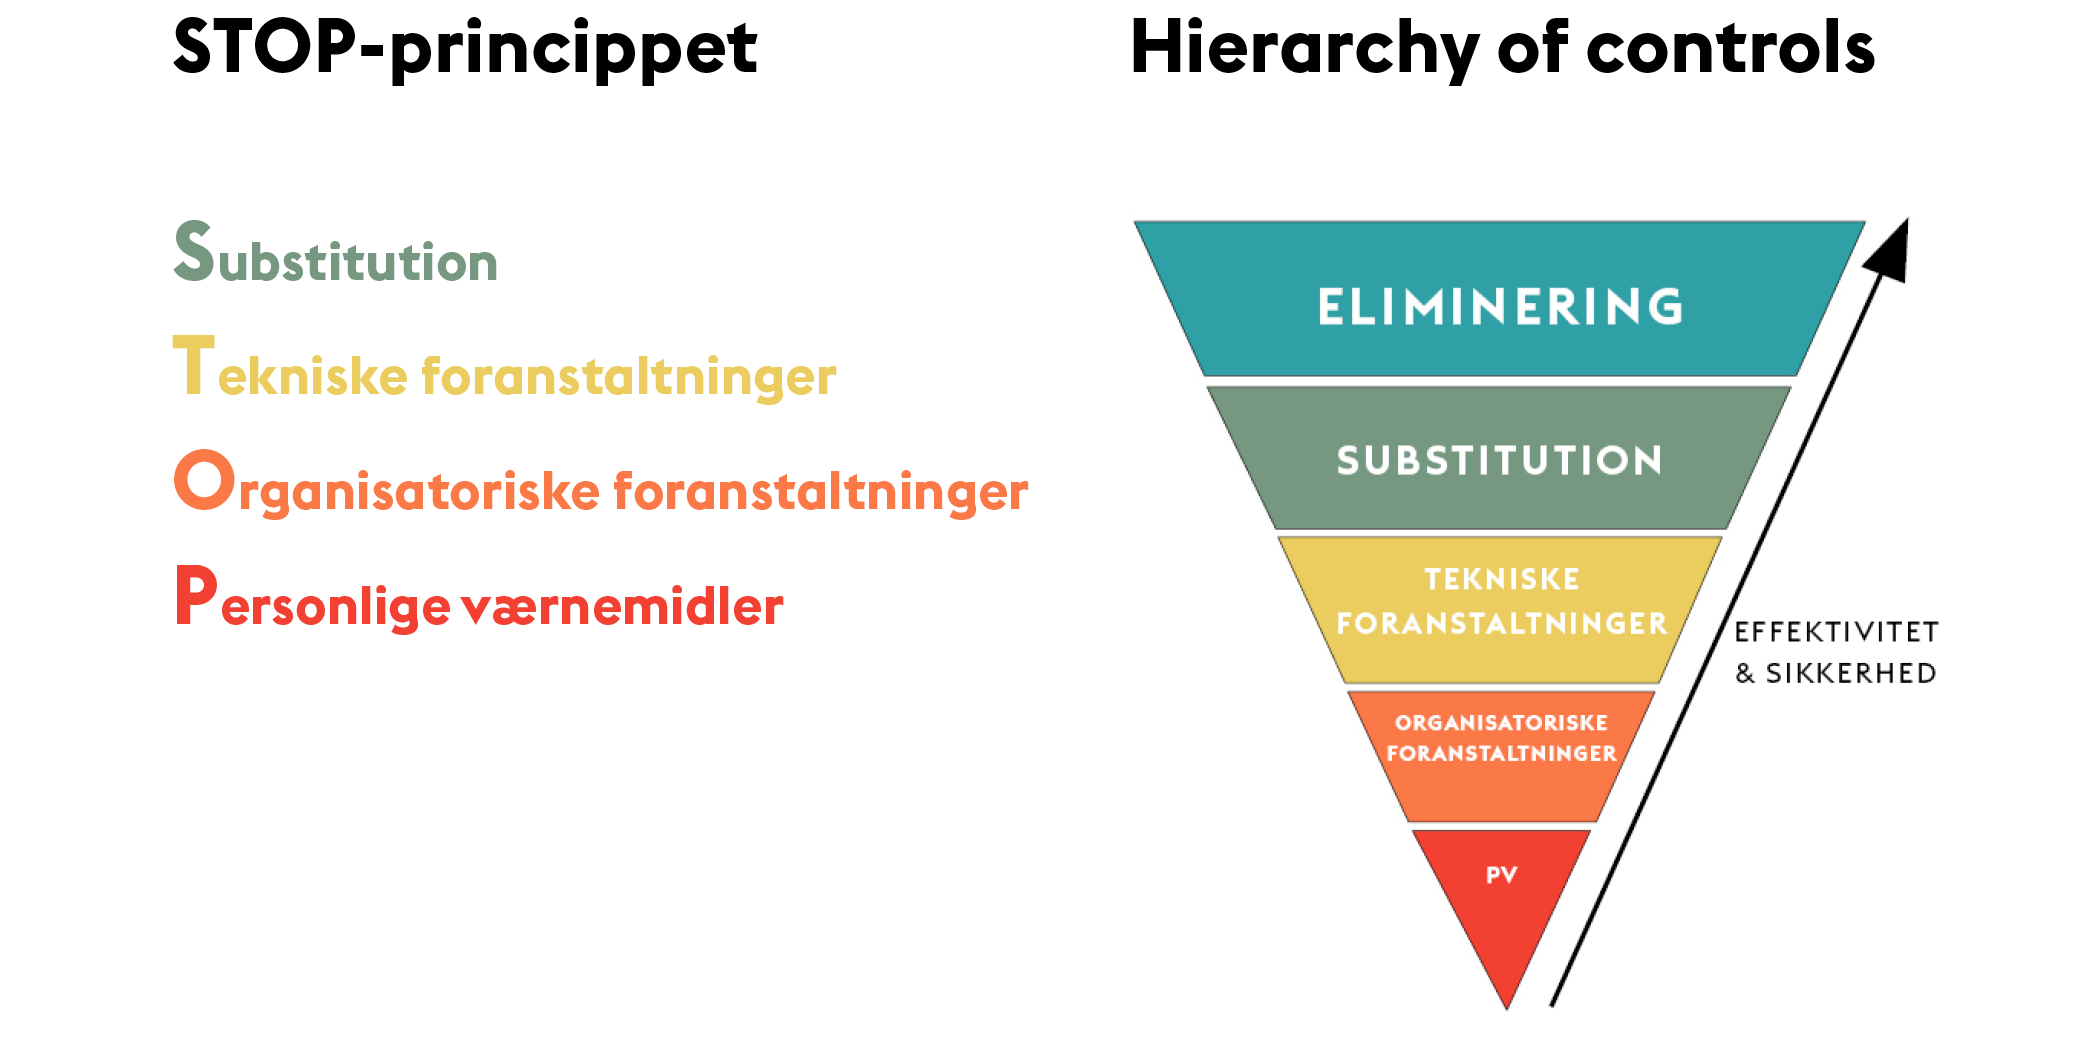 STOP princippet og hierarchy of controls